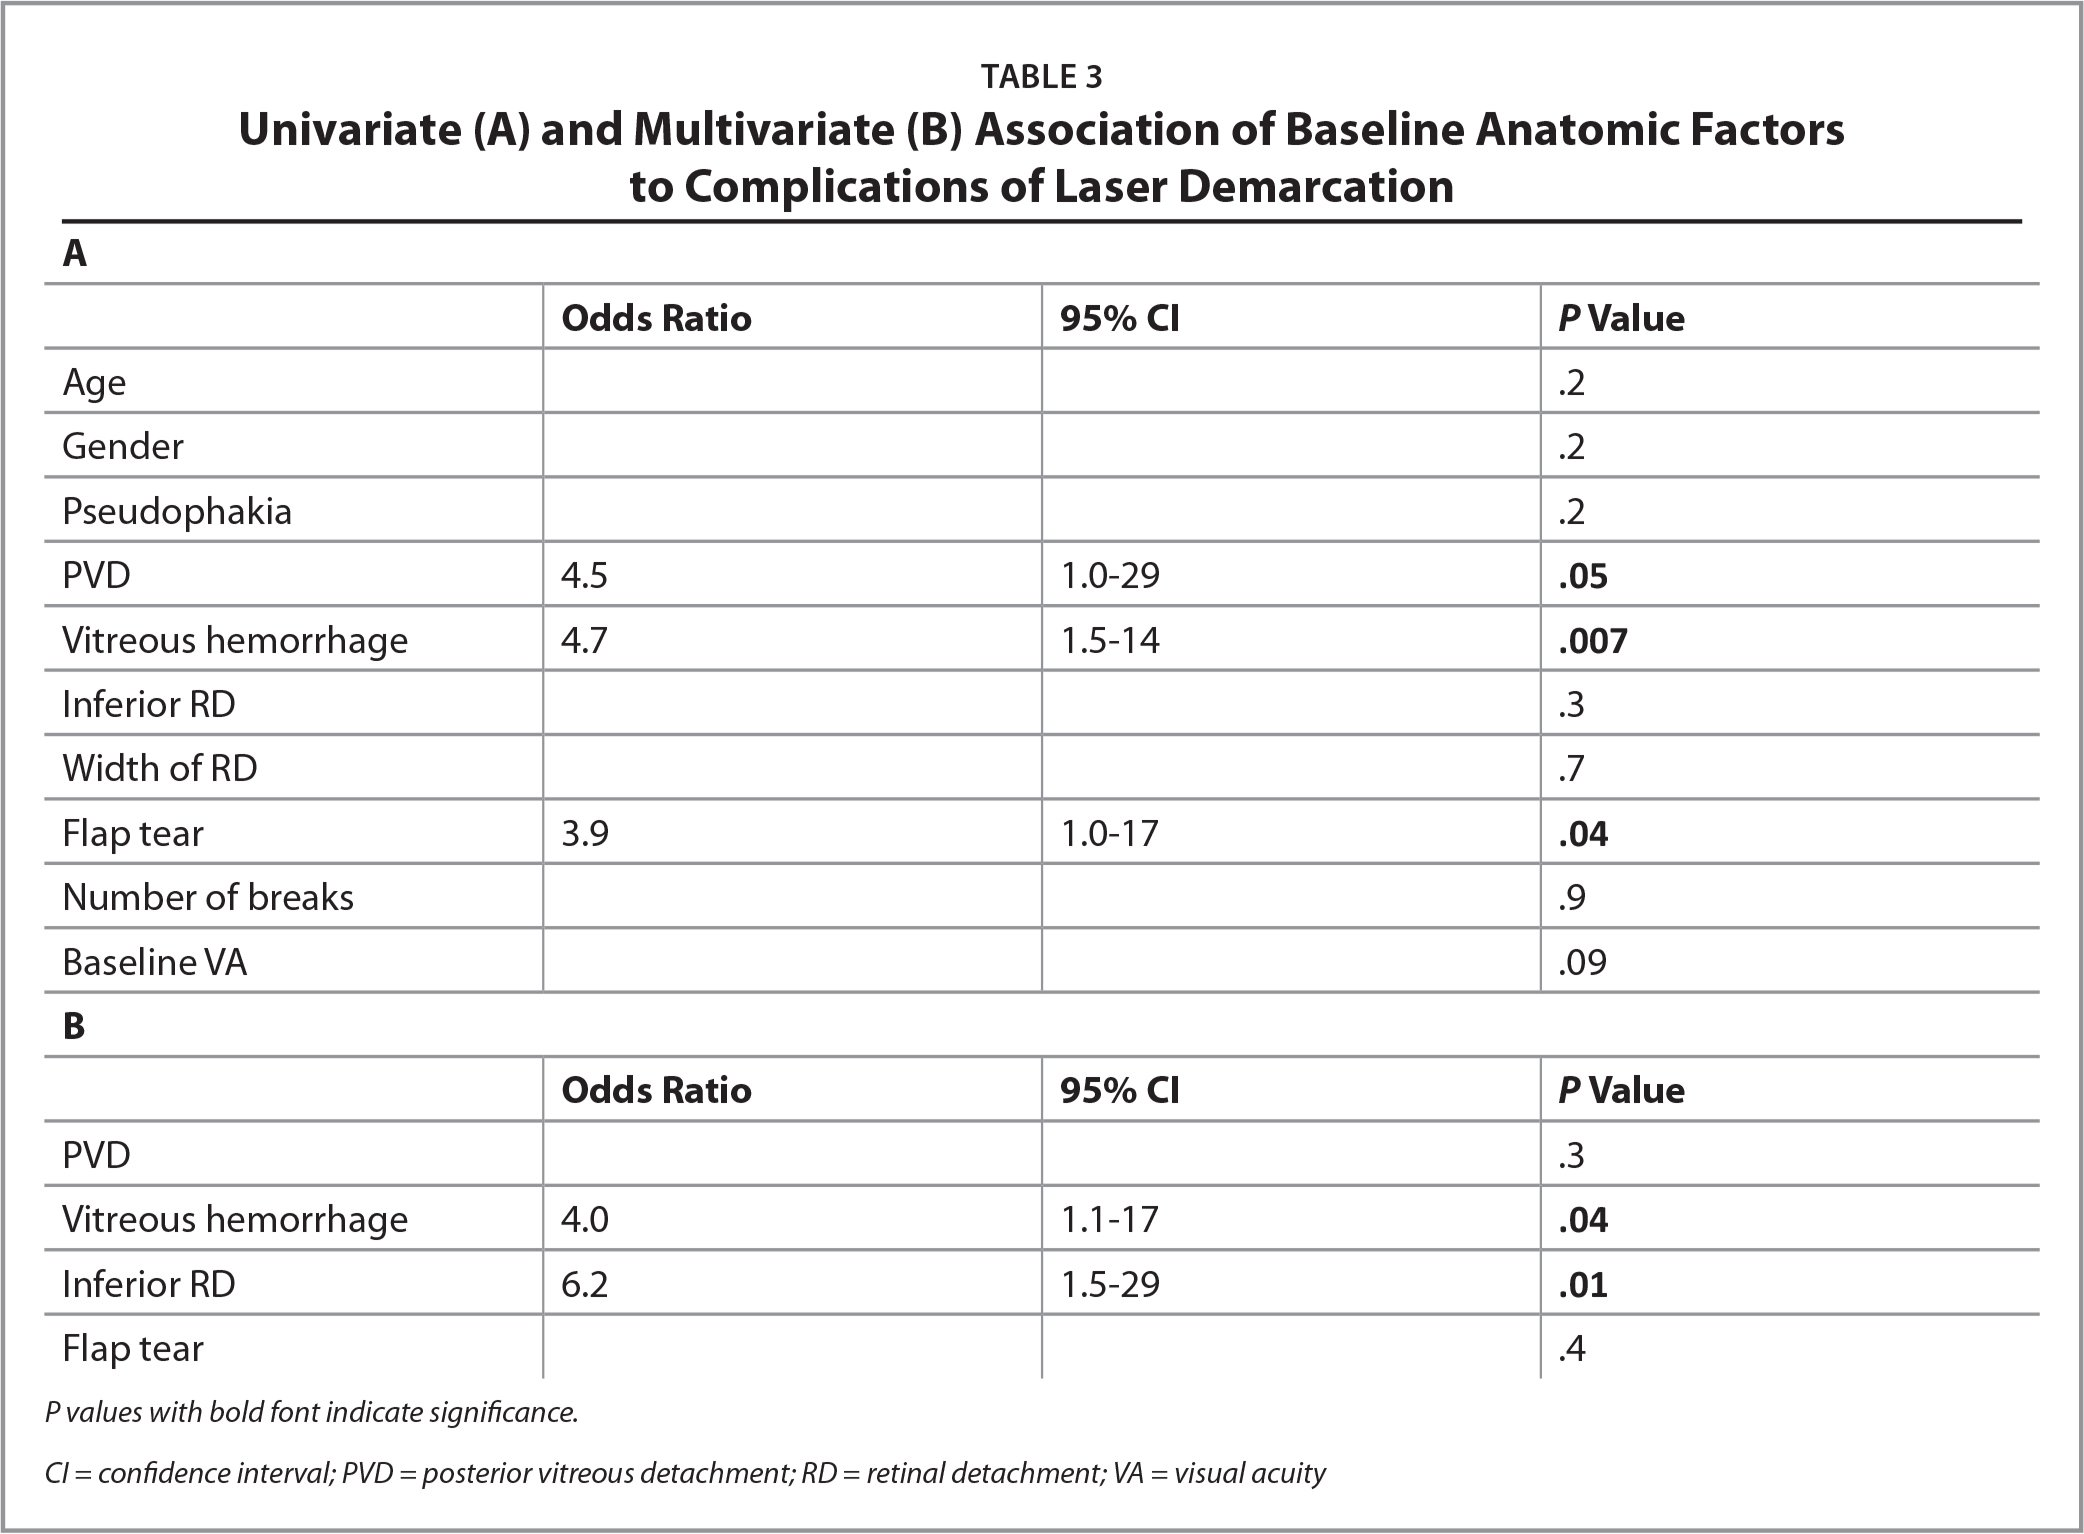 Univariate (A) and Multivariate (B) Association of Baseline Anatomic Factors to Complications of Laser Demarcation